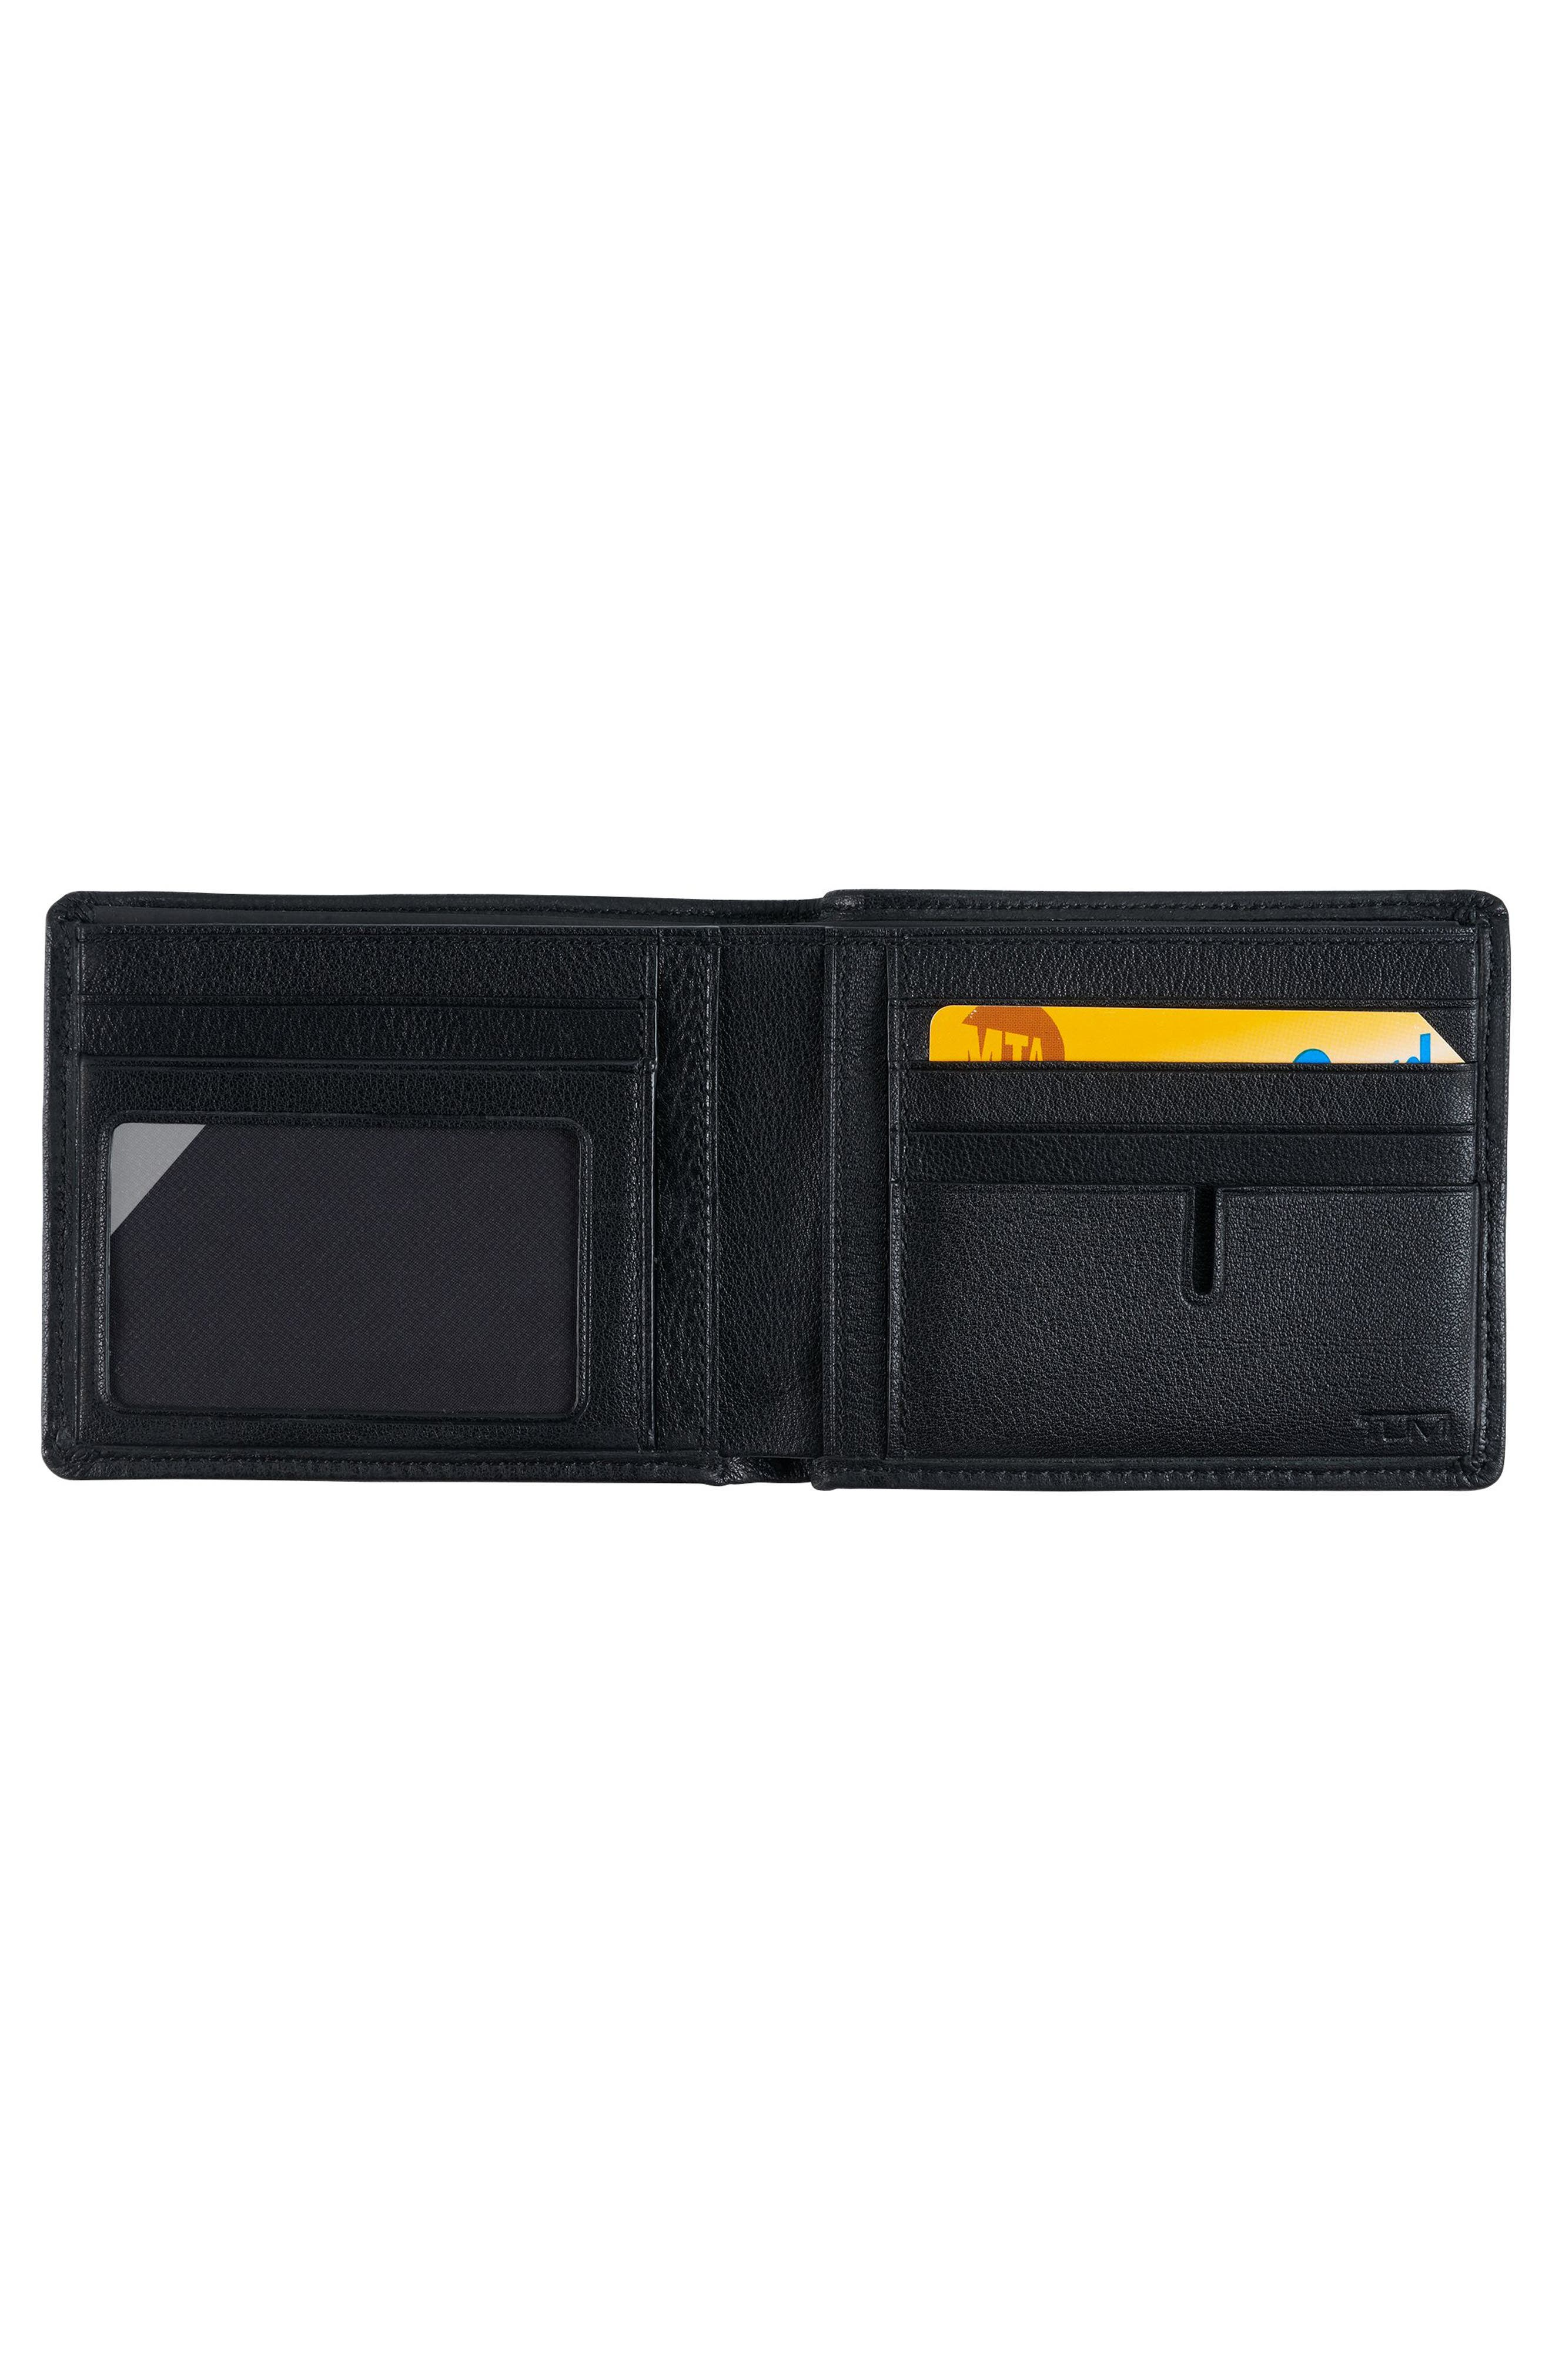 TUMI, Global Leather RFID Wallet, Alternate thumbnail 2, color, 011